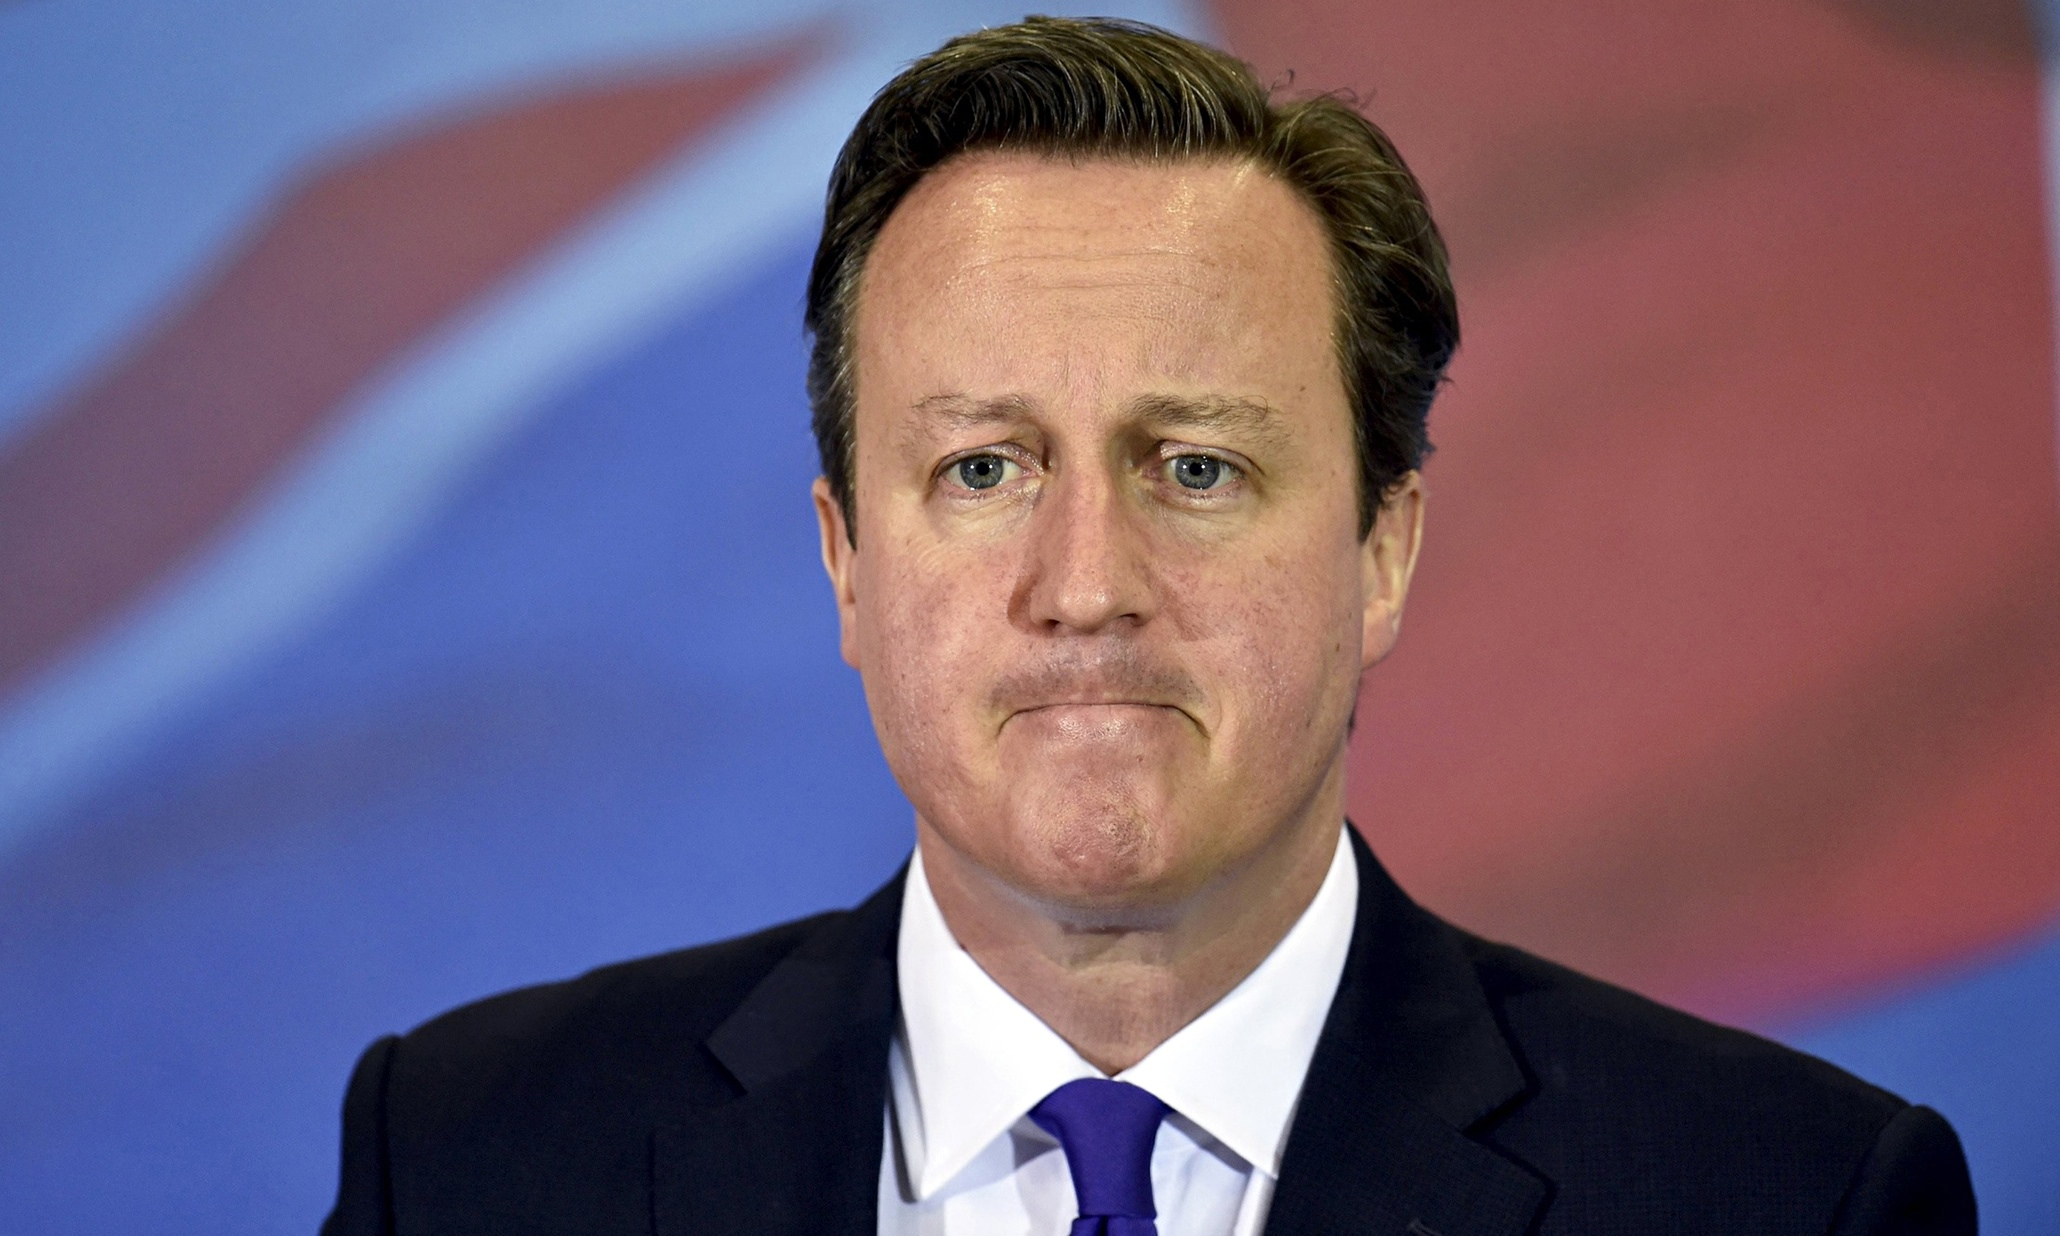 David Cameron looking nervous